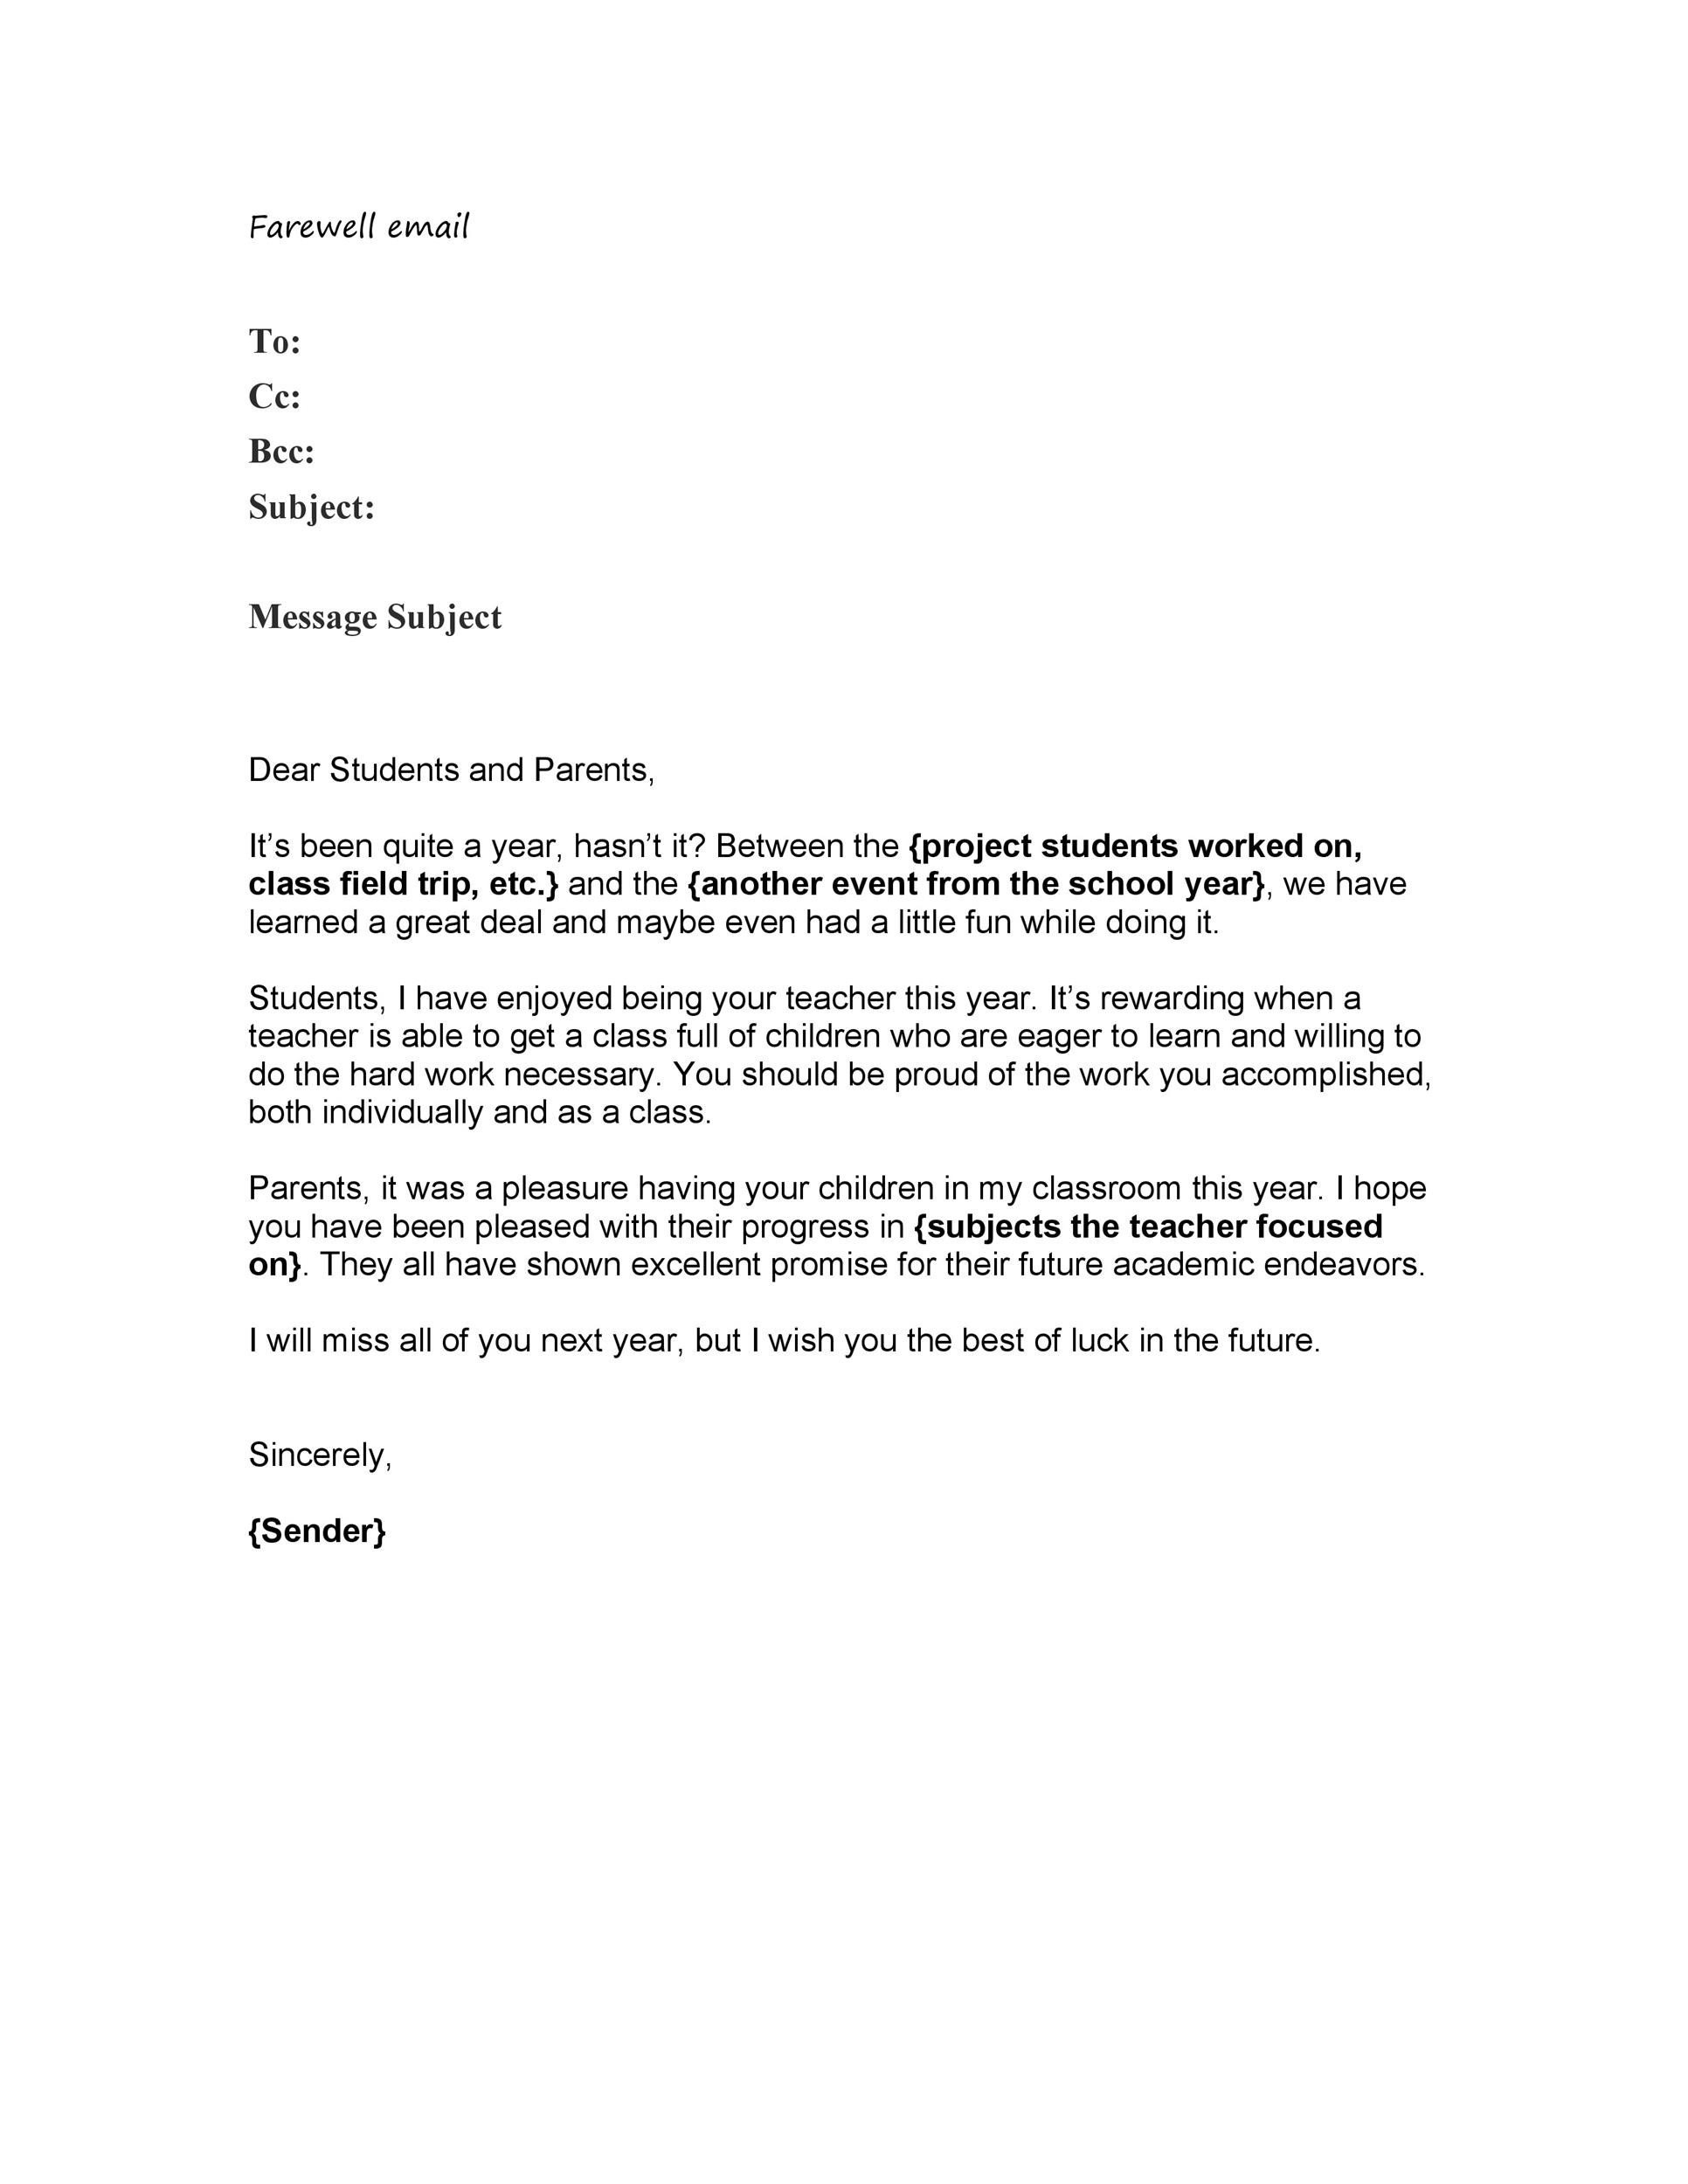 Free farewell email template 17